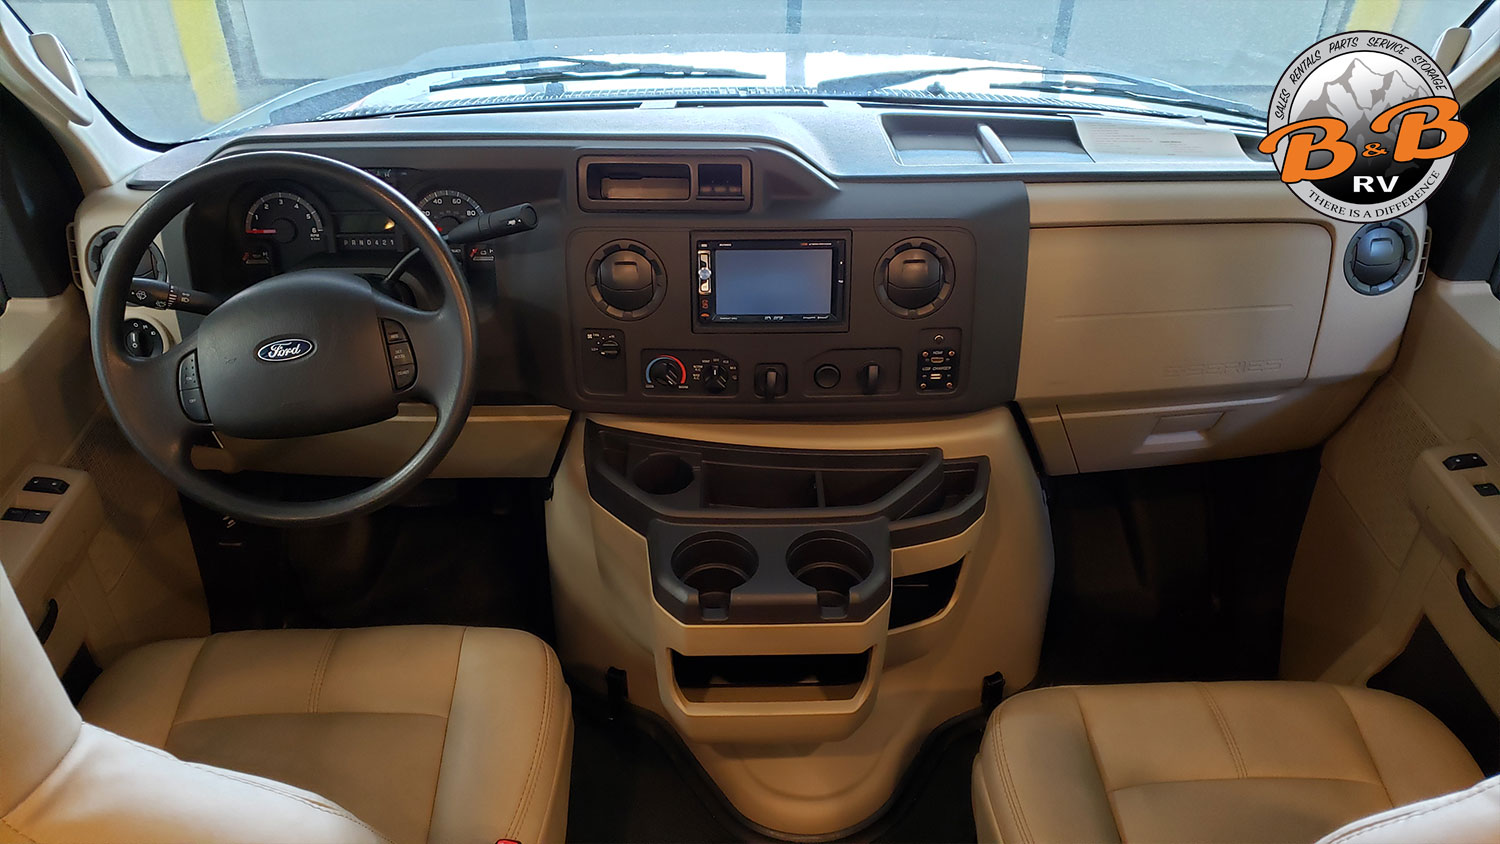 Thor Chateau Class C RV 28Z Front Cabin